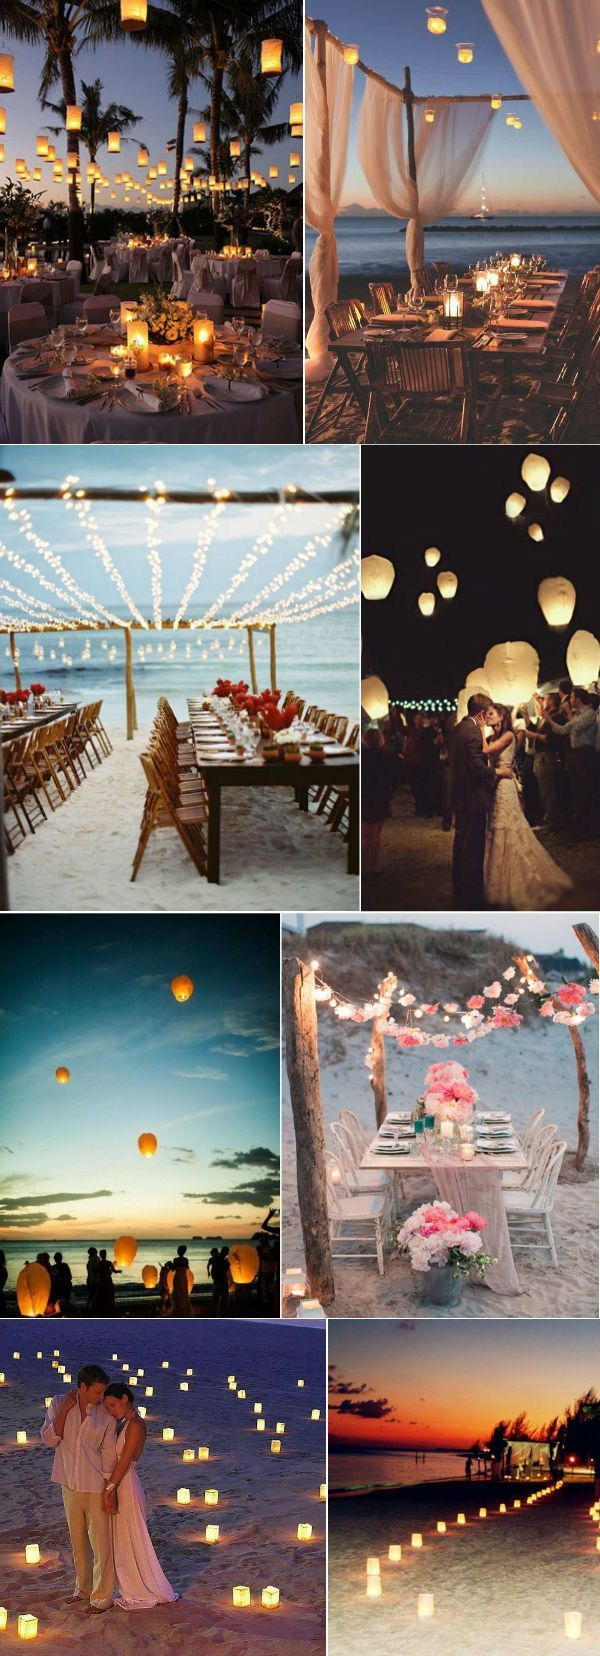 Romantic Beach Wedding Decoration Ideas With Candles Stringligjhts And Lanterns.